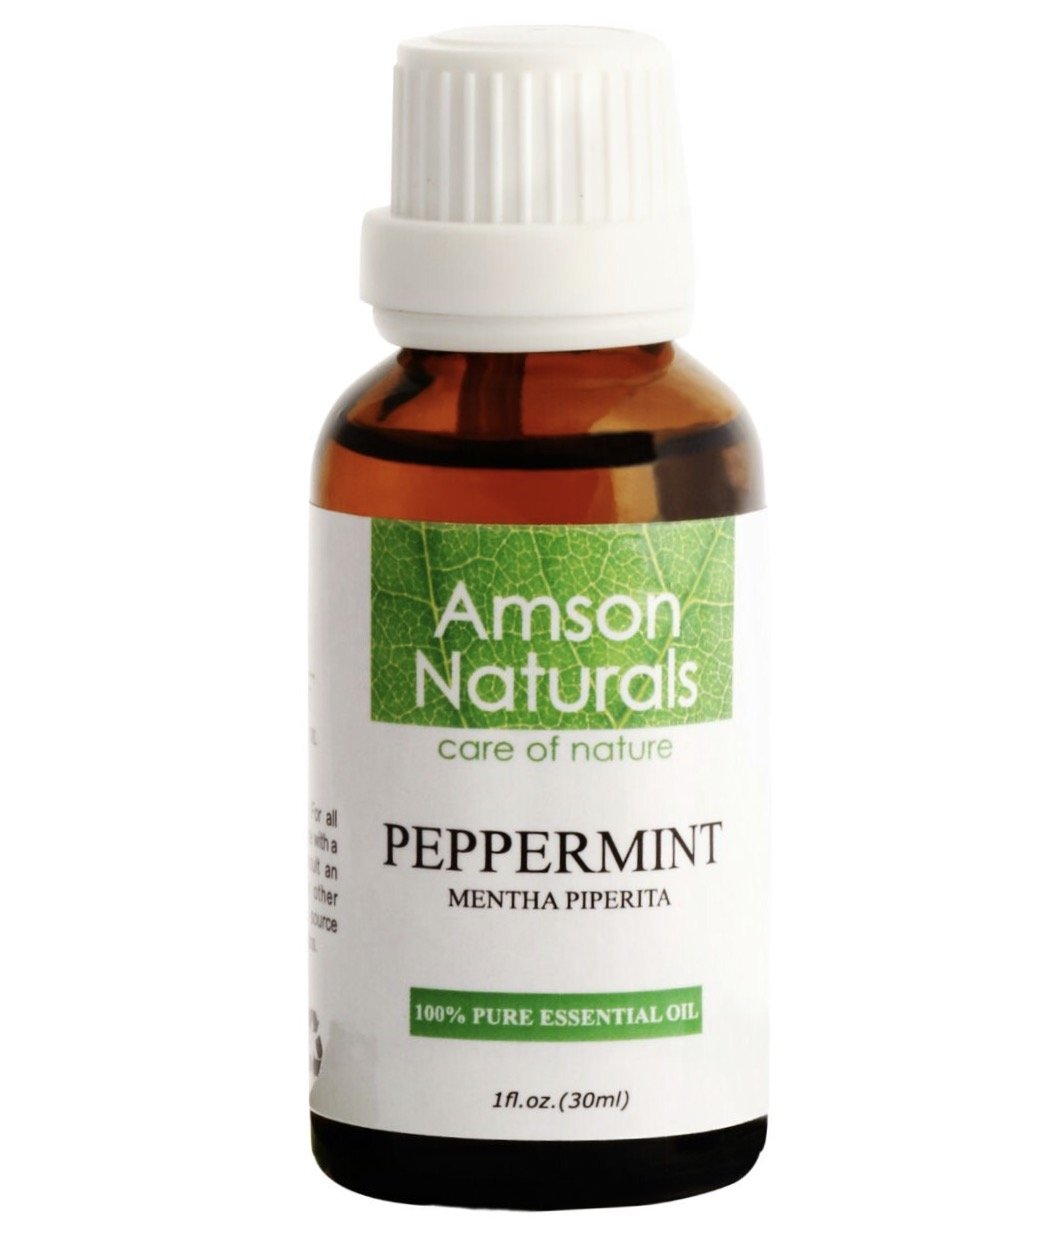 PEPPERMINT Essential Oil 1oz (30ml) - 100% Pure & Natural –by Amson Naturals